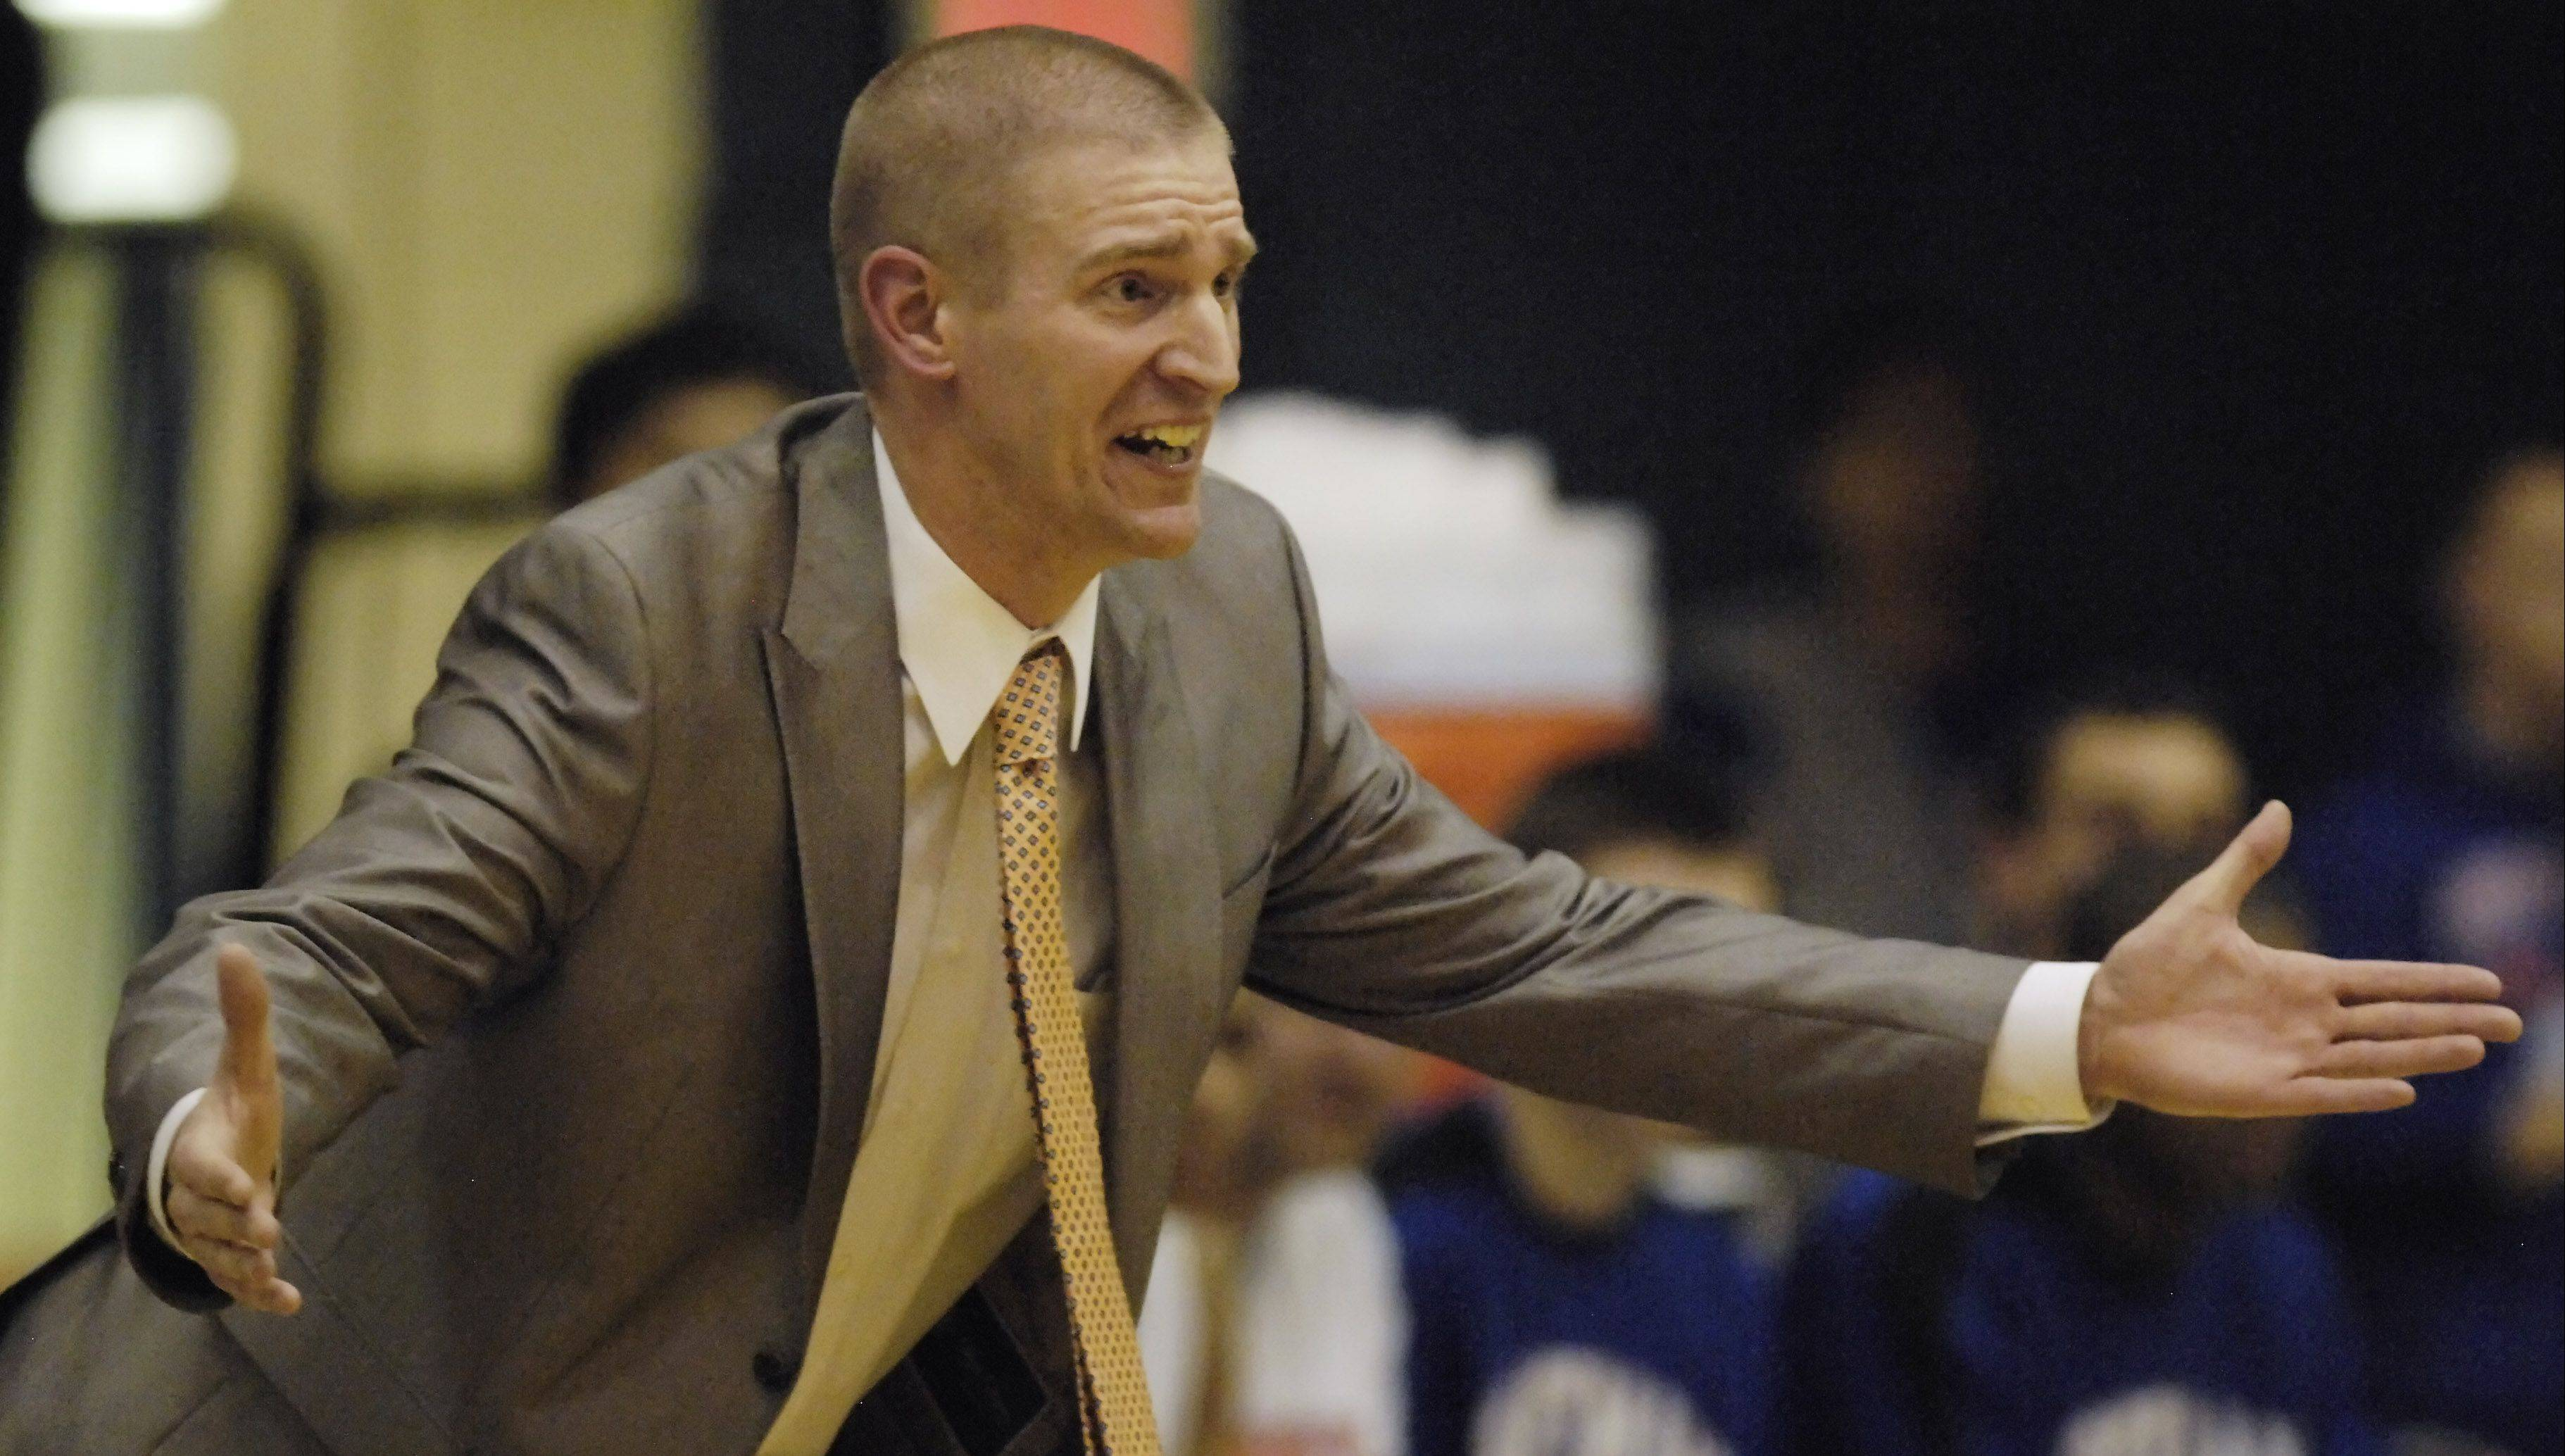 Hoffman Estates coach Luke Yanule takes his team to Elgin's tournament, with a first-round game Wednesday.